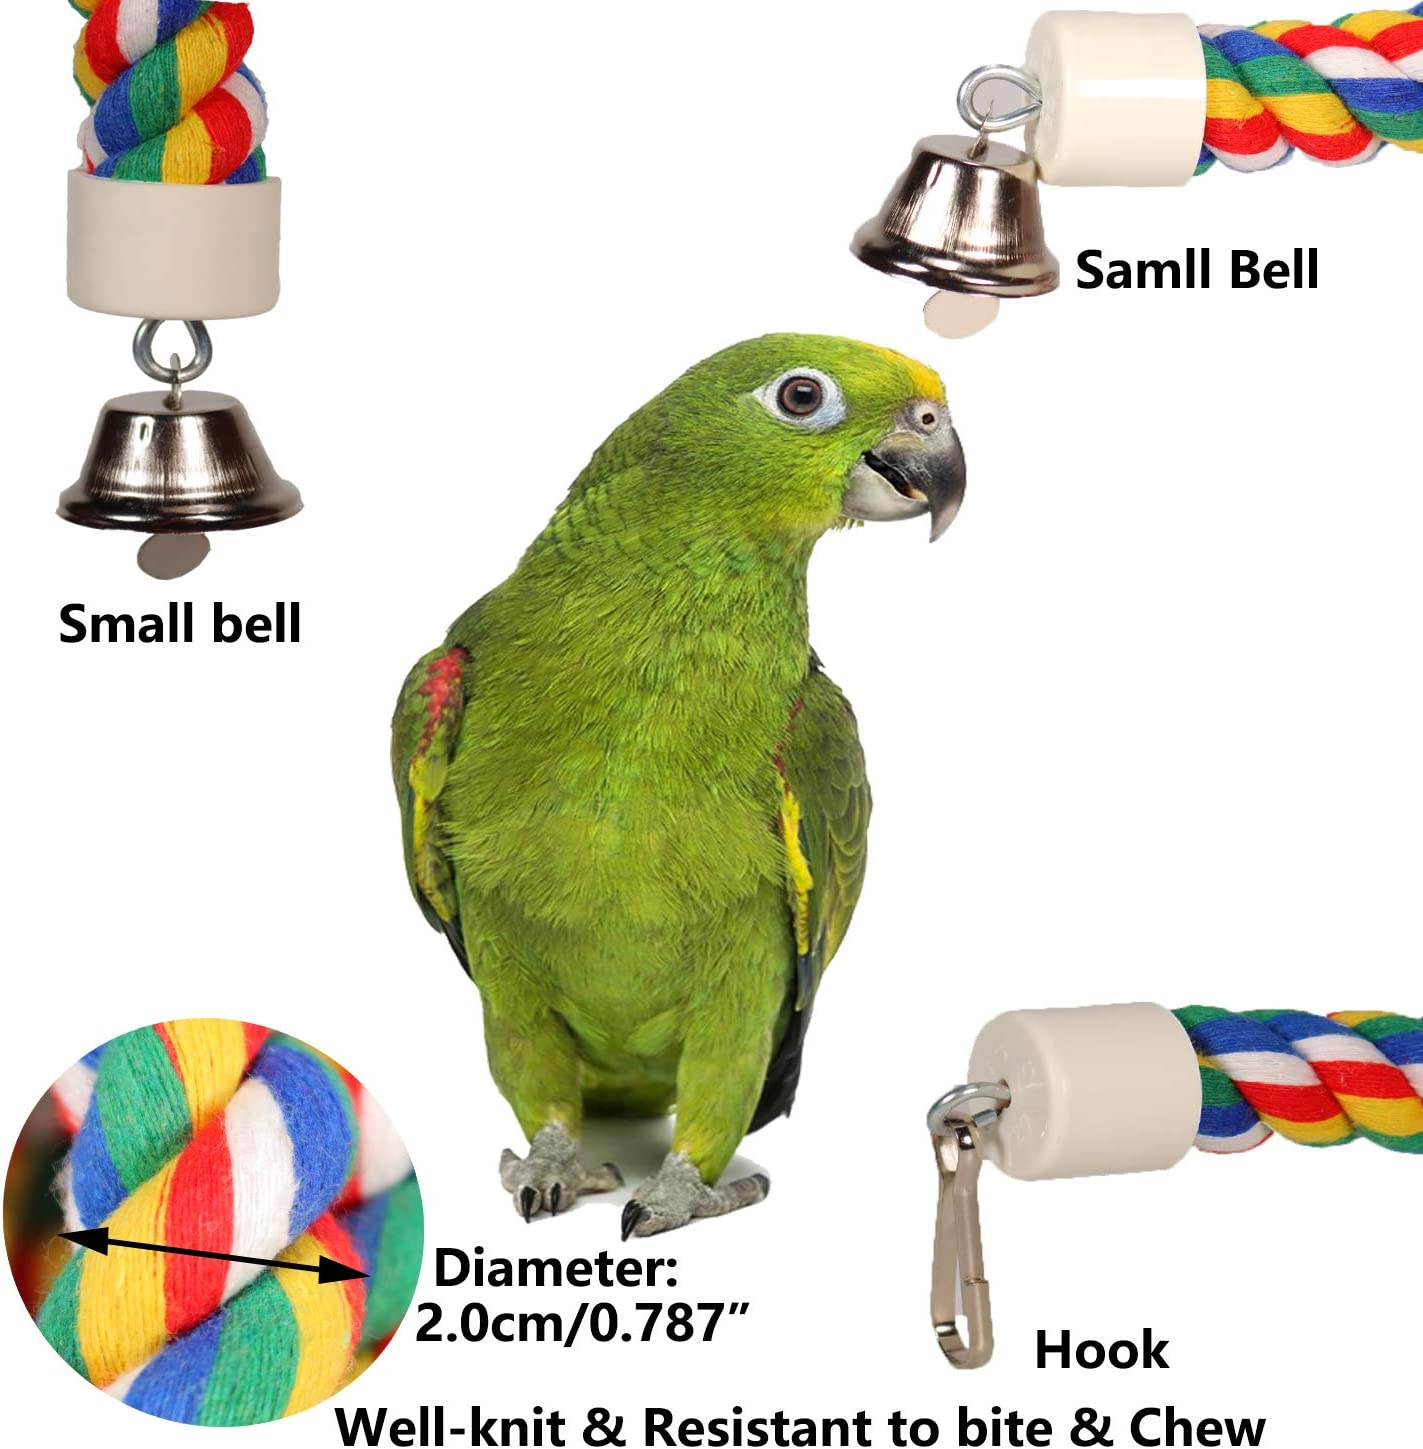 ILESON Bird Rope Perches Stand Ladder Toys for Parrots Parakeets Cockatiels Conures Macaw Lovebirds Budgies Swing Cage Accessories Comfy Bird Bungee Rope Perch Boing with Bell